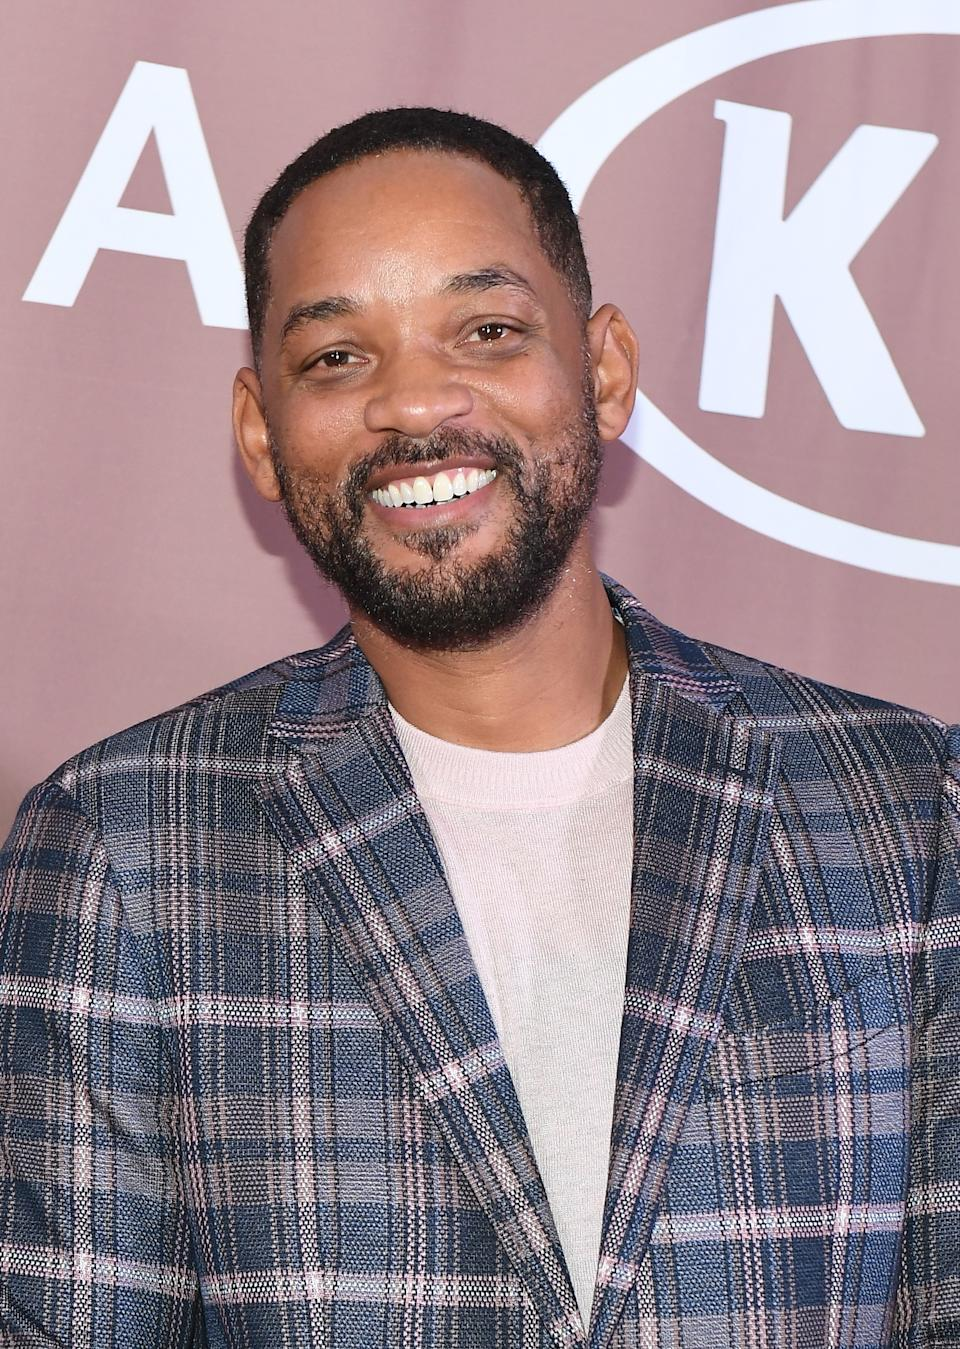 ATLANTA, GEORGIA - JANUARY 18:  Will Smith attends 2020 Salute to Greatness Awards Gala at Hyatt Regency Atlanta on January 18, 2020 in Atlanta, Georgia. (Photo by Paras Griffin/Getty Images)